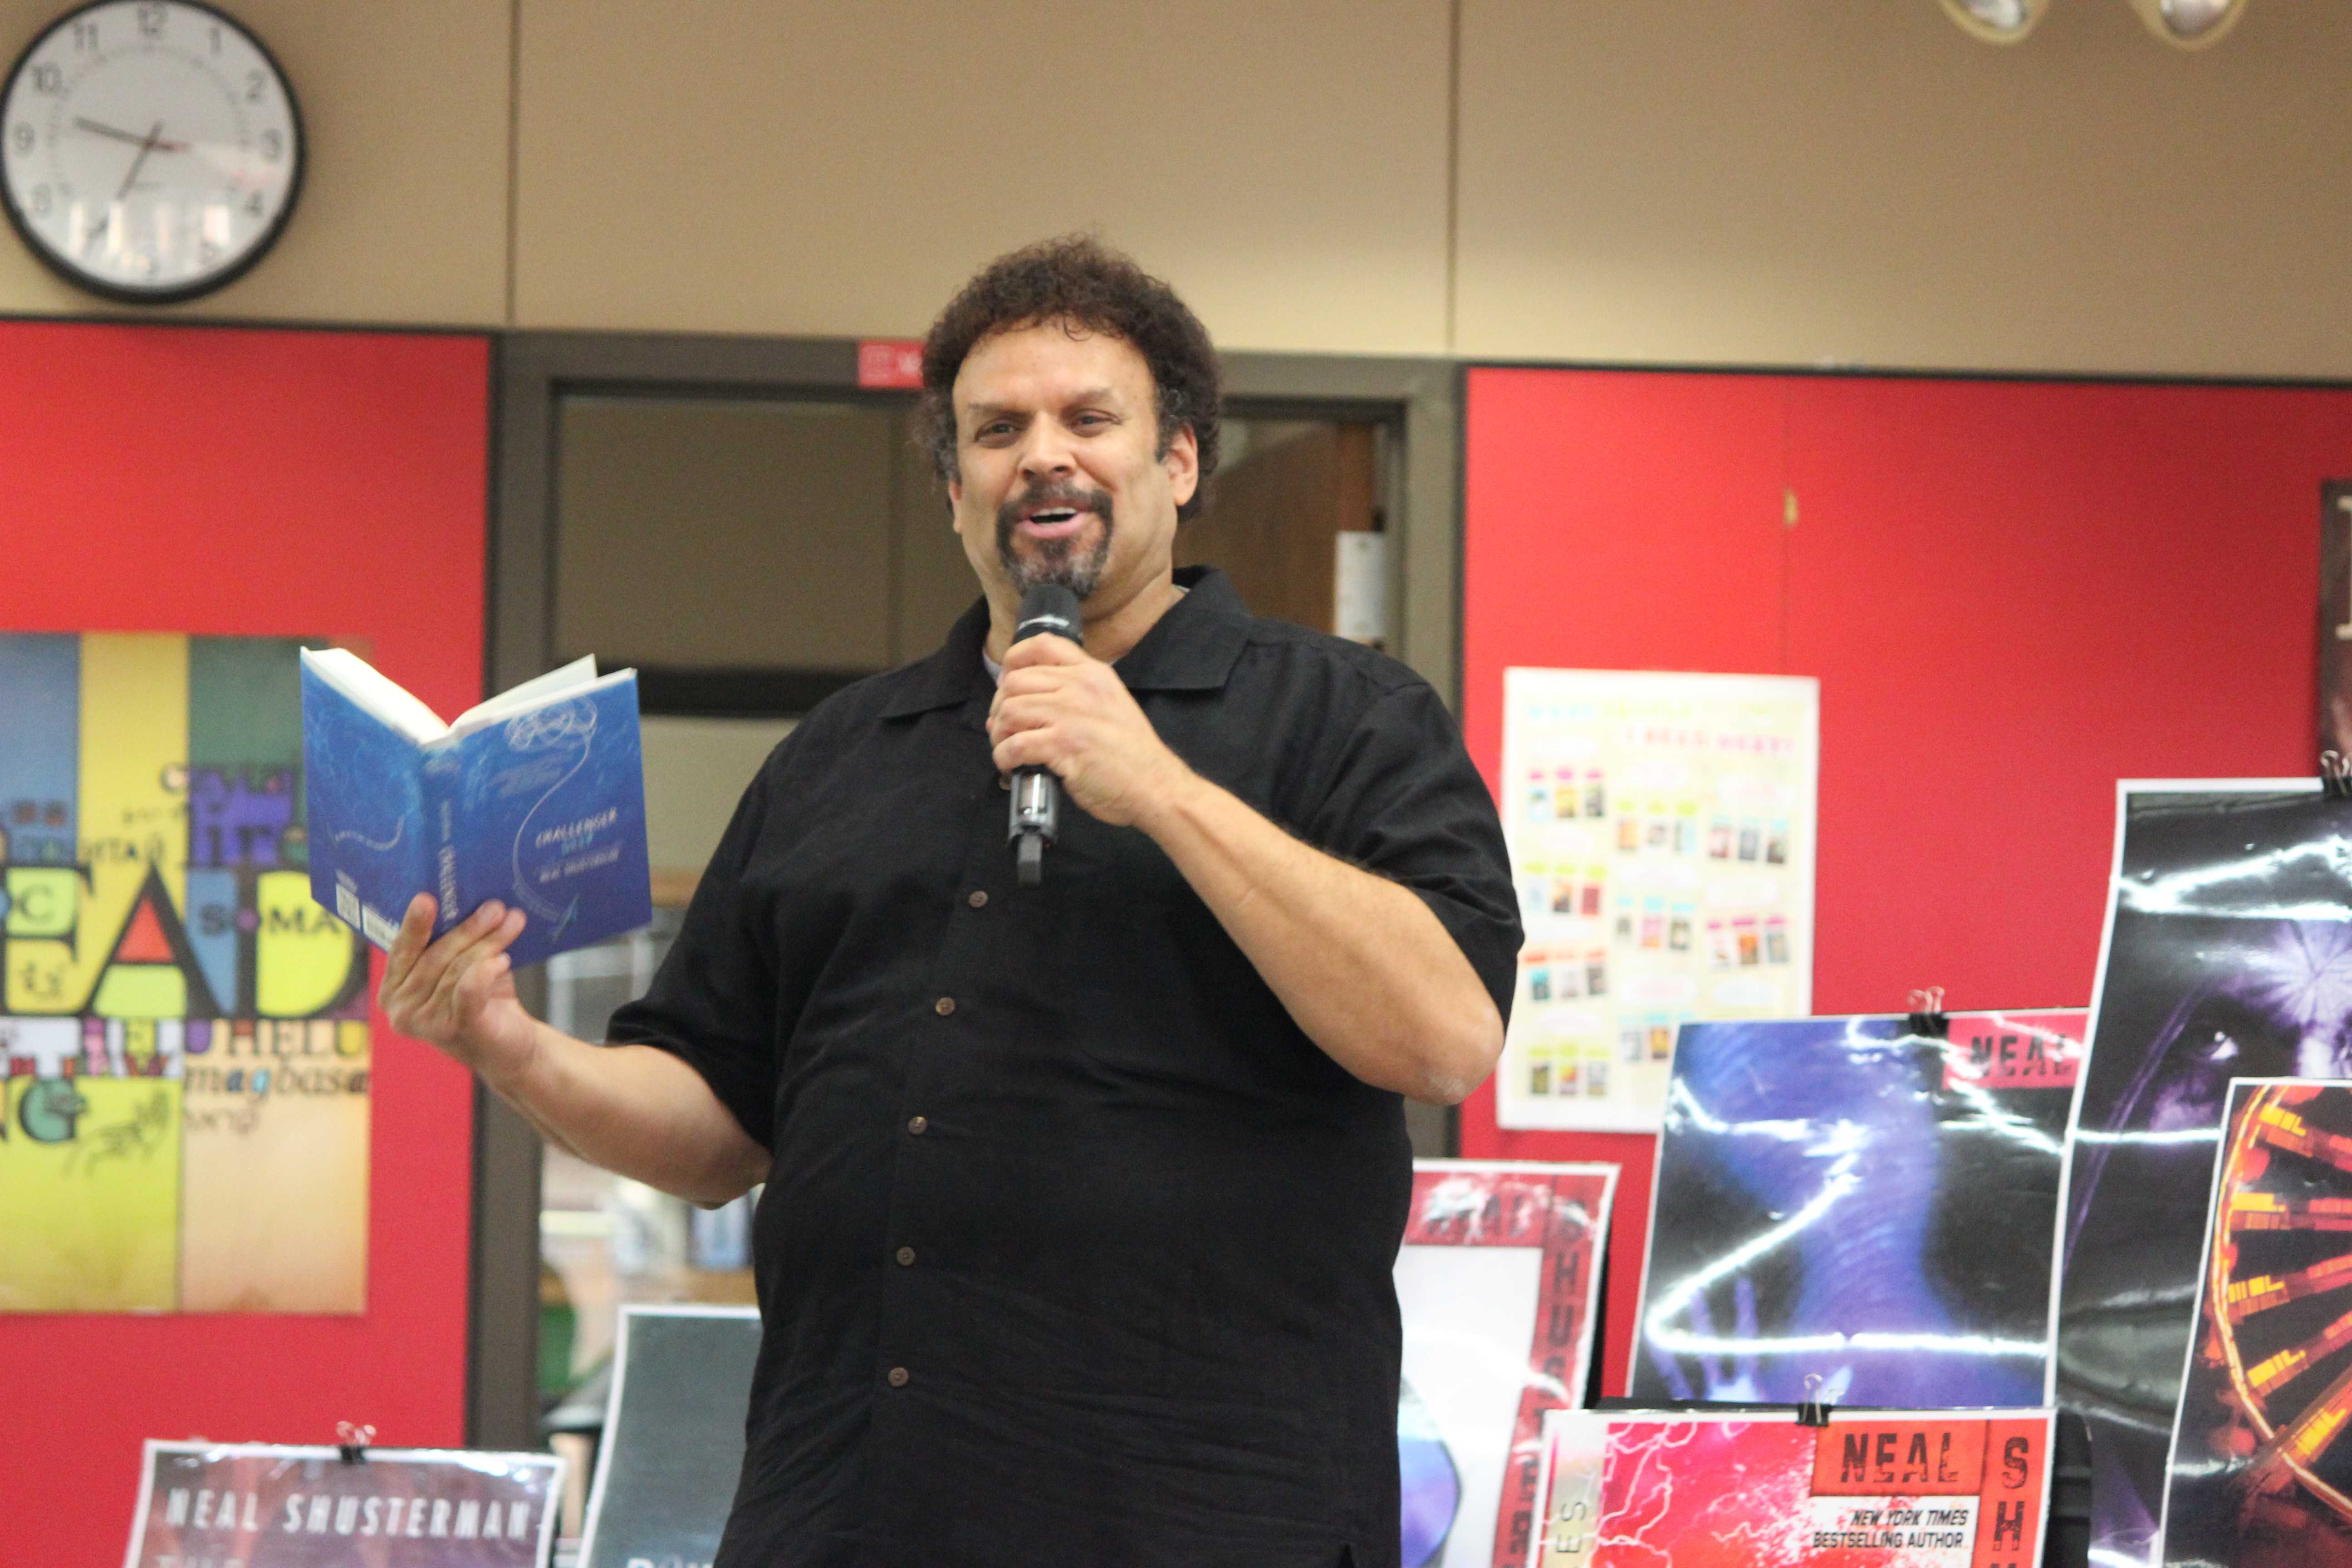 Author Neal Shusterman reads a paragraph of his new release